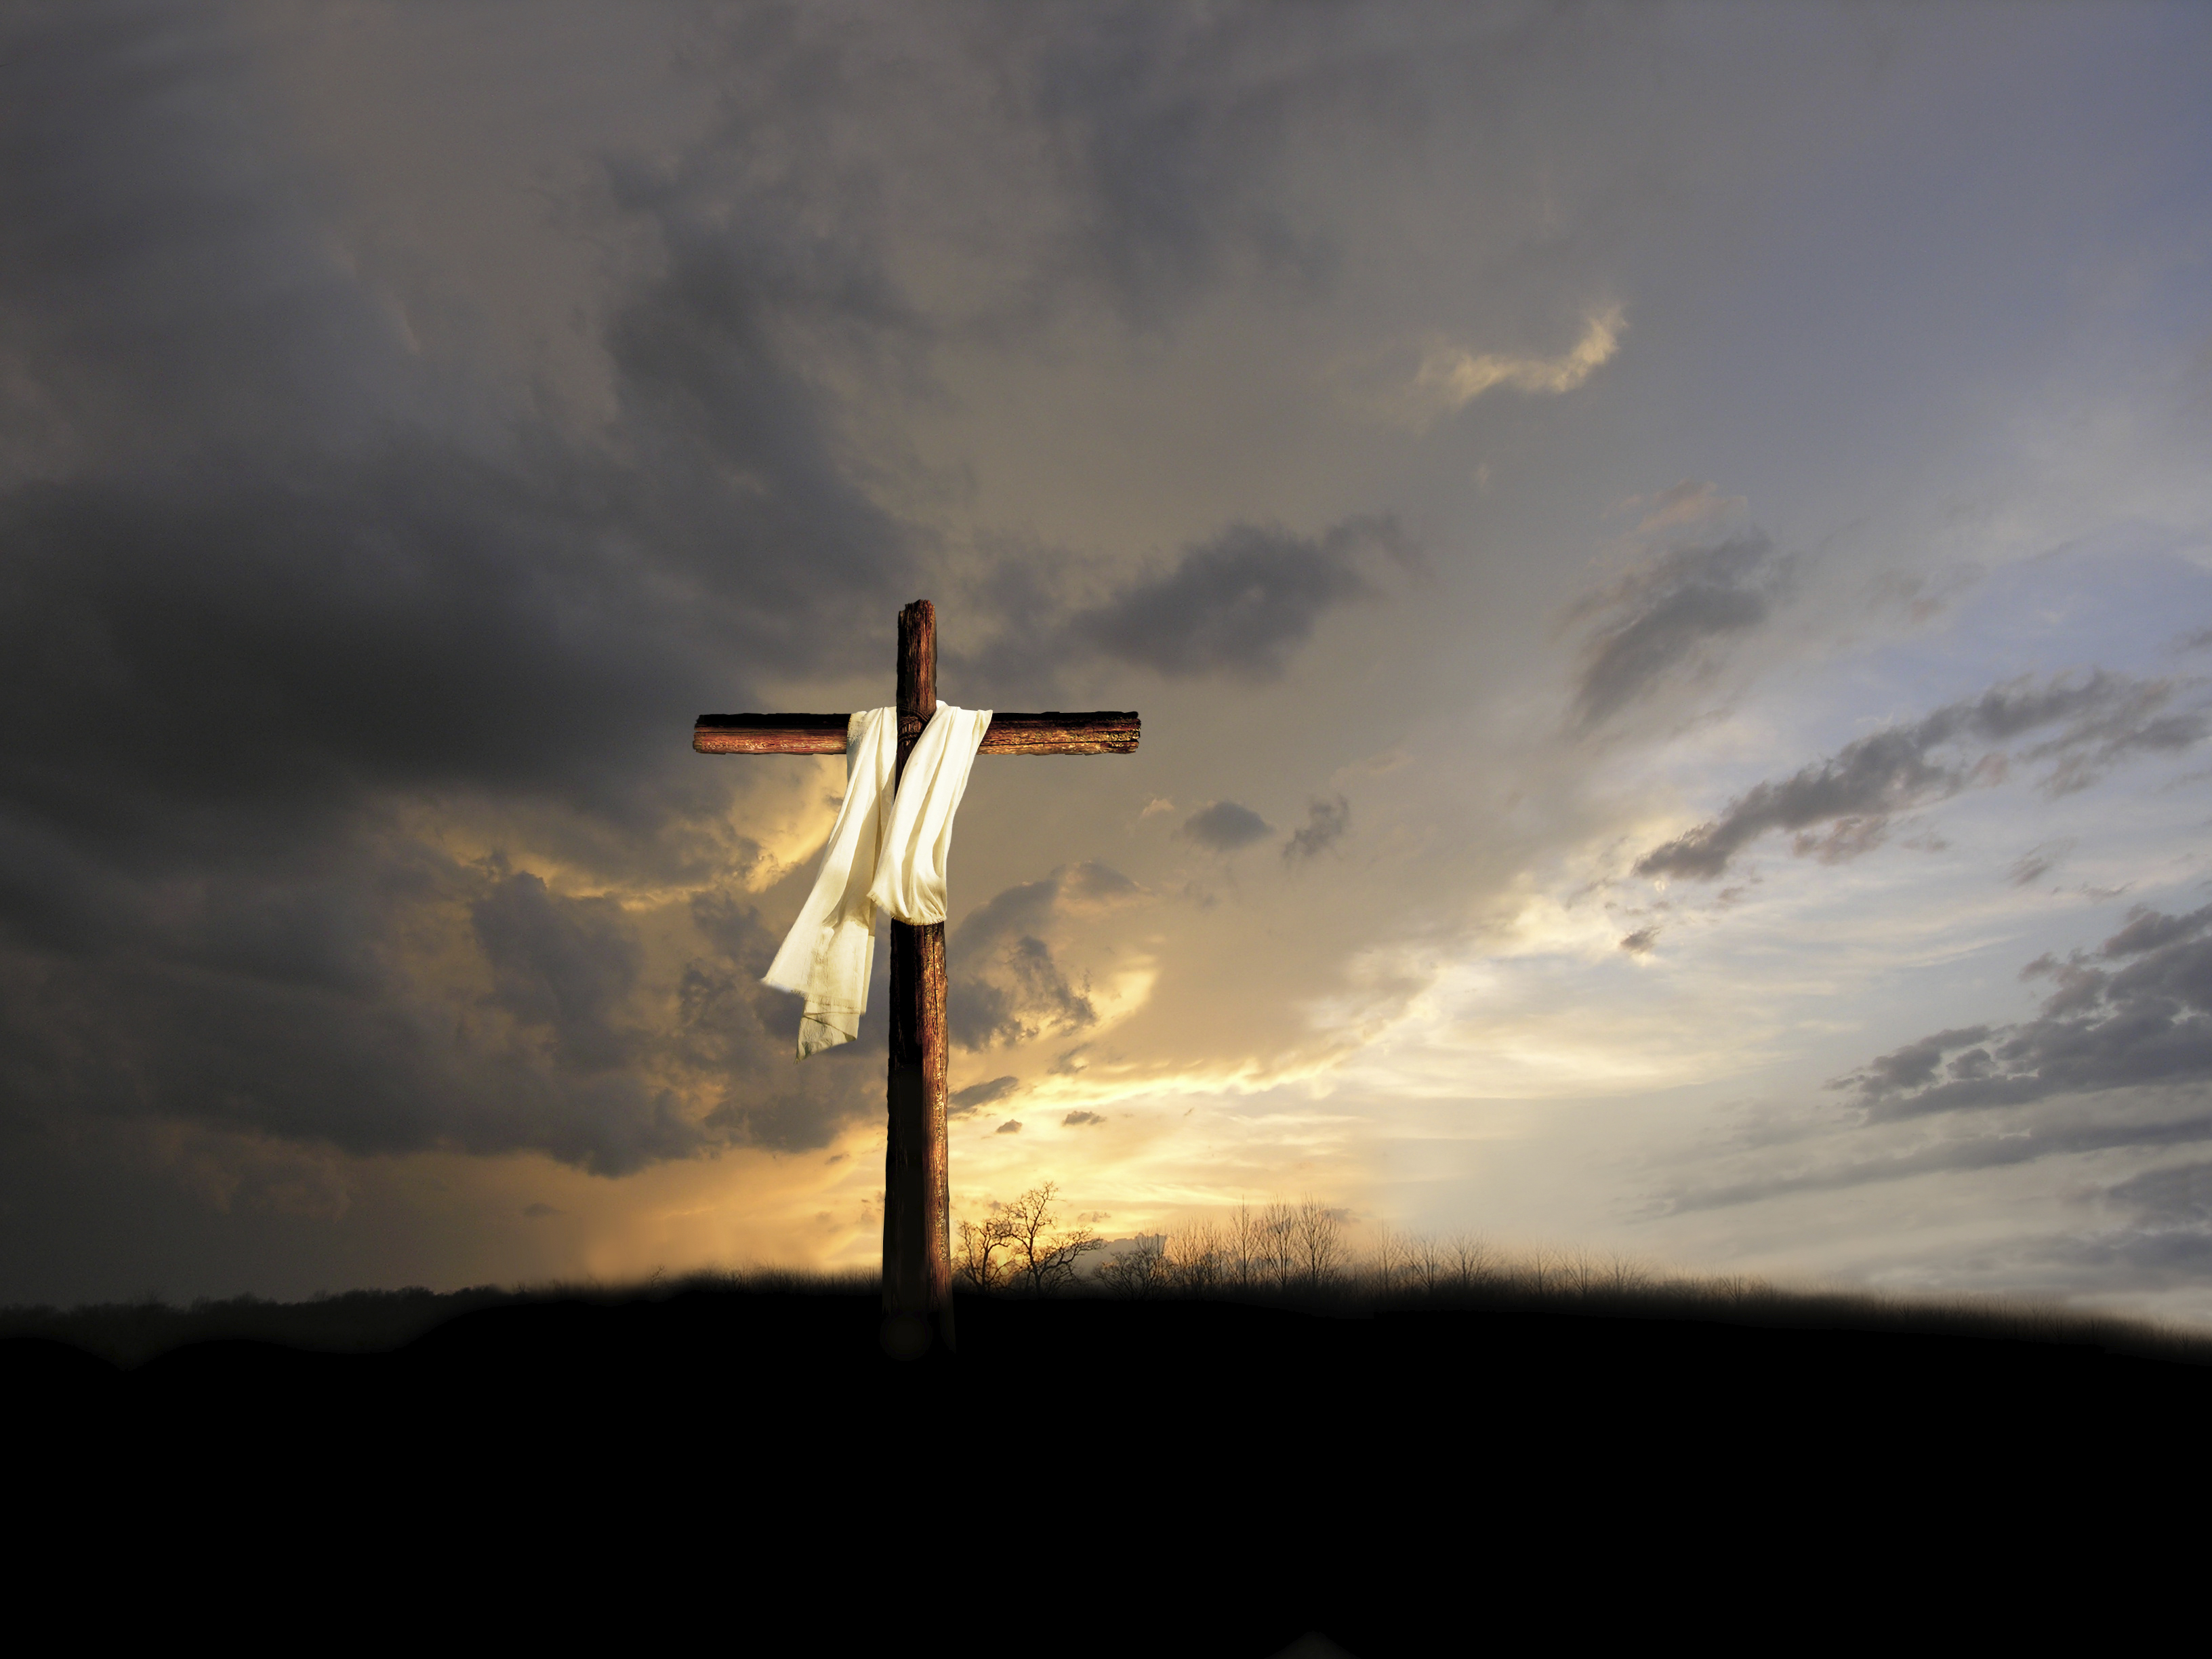 http://www.sutalleebaptistchurch.com/uploads/Easter-Cross.jpg